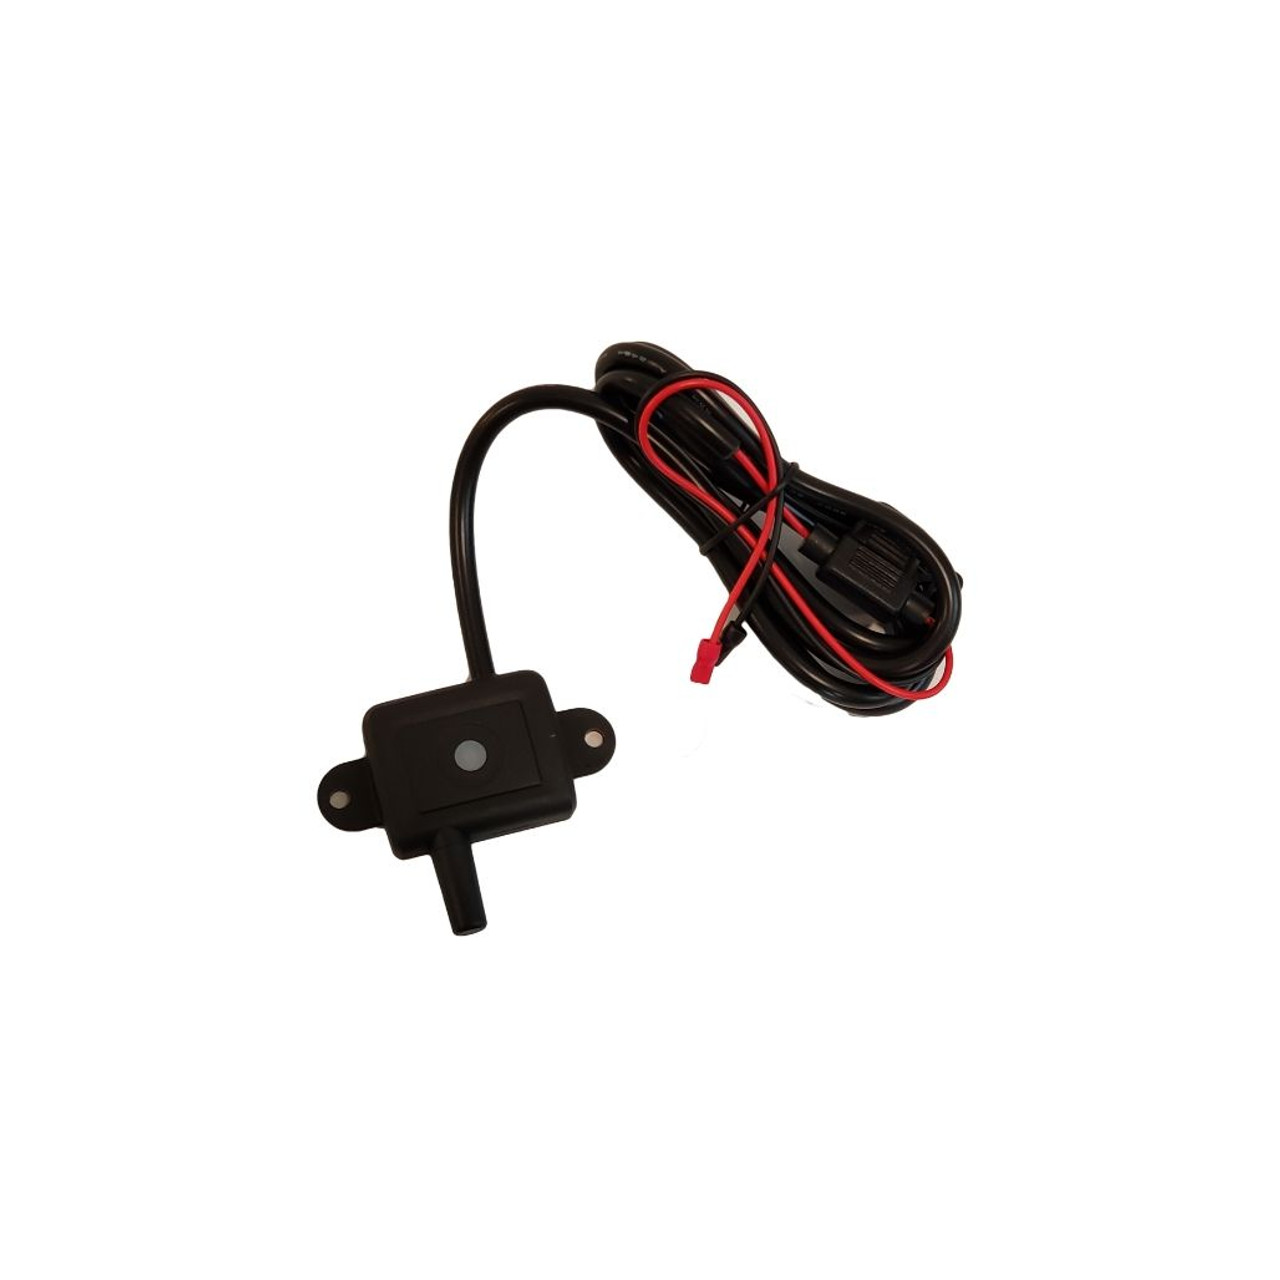 TST 507 TPMS with FLOW THRU Sensors (06) and Repeater